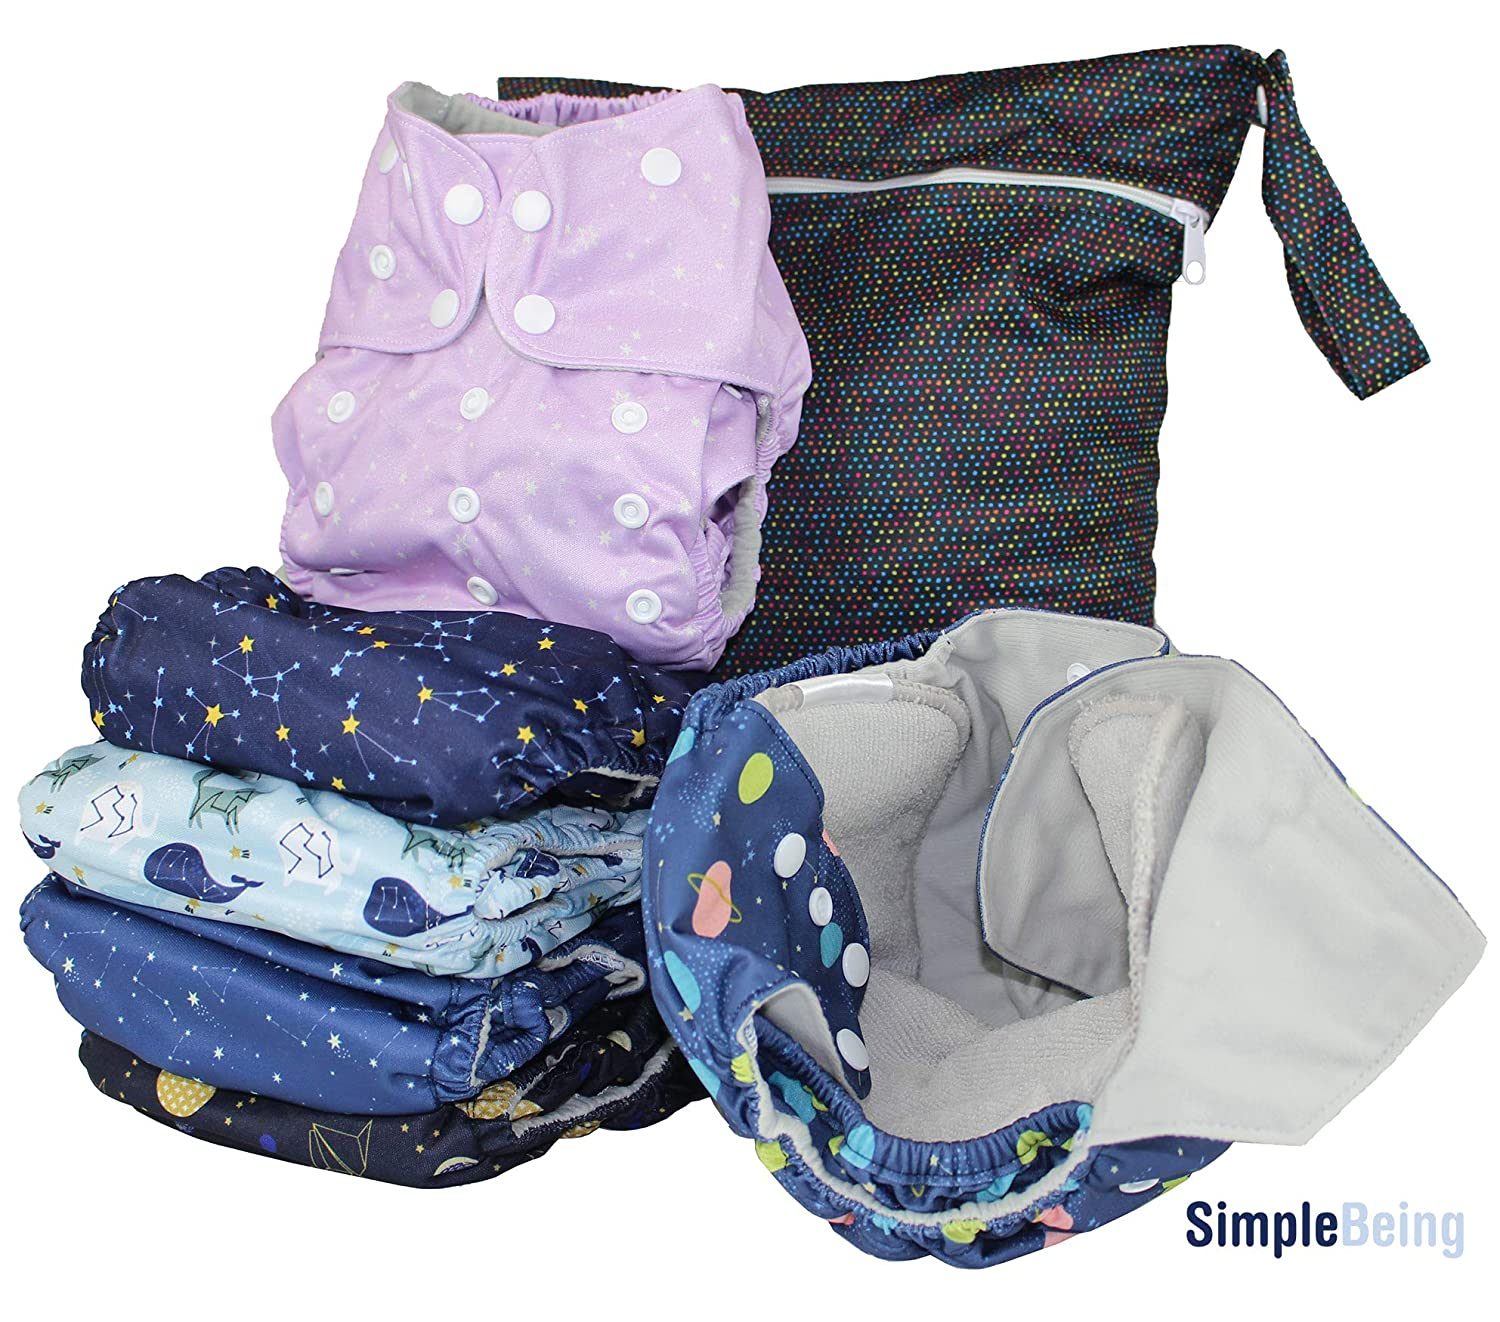 Reusable Diapers: Take a Trip to the Washer instead of to the Store